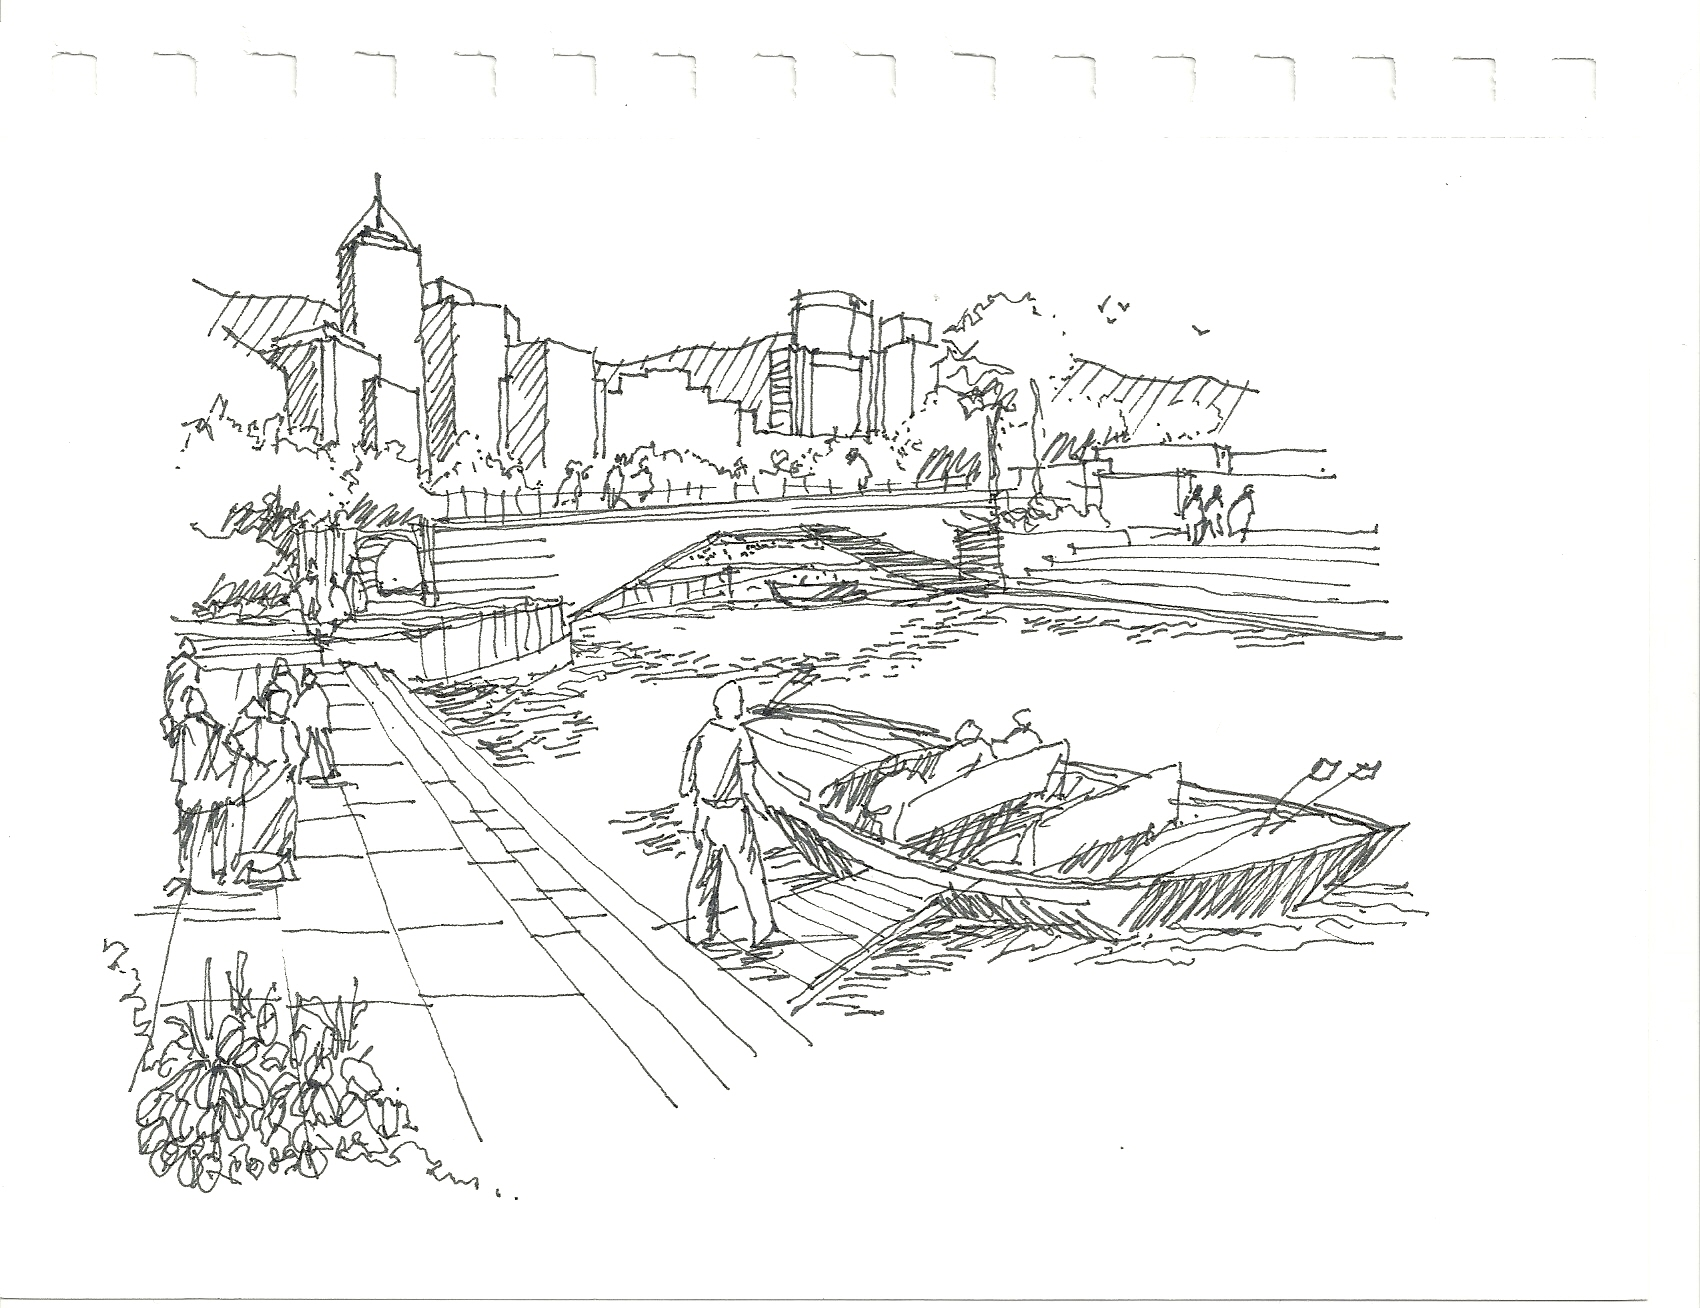 more conceptual waterfront sketches